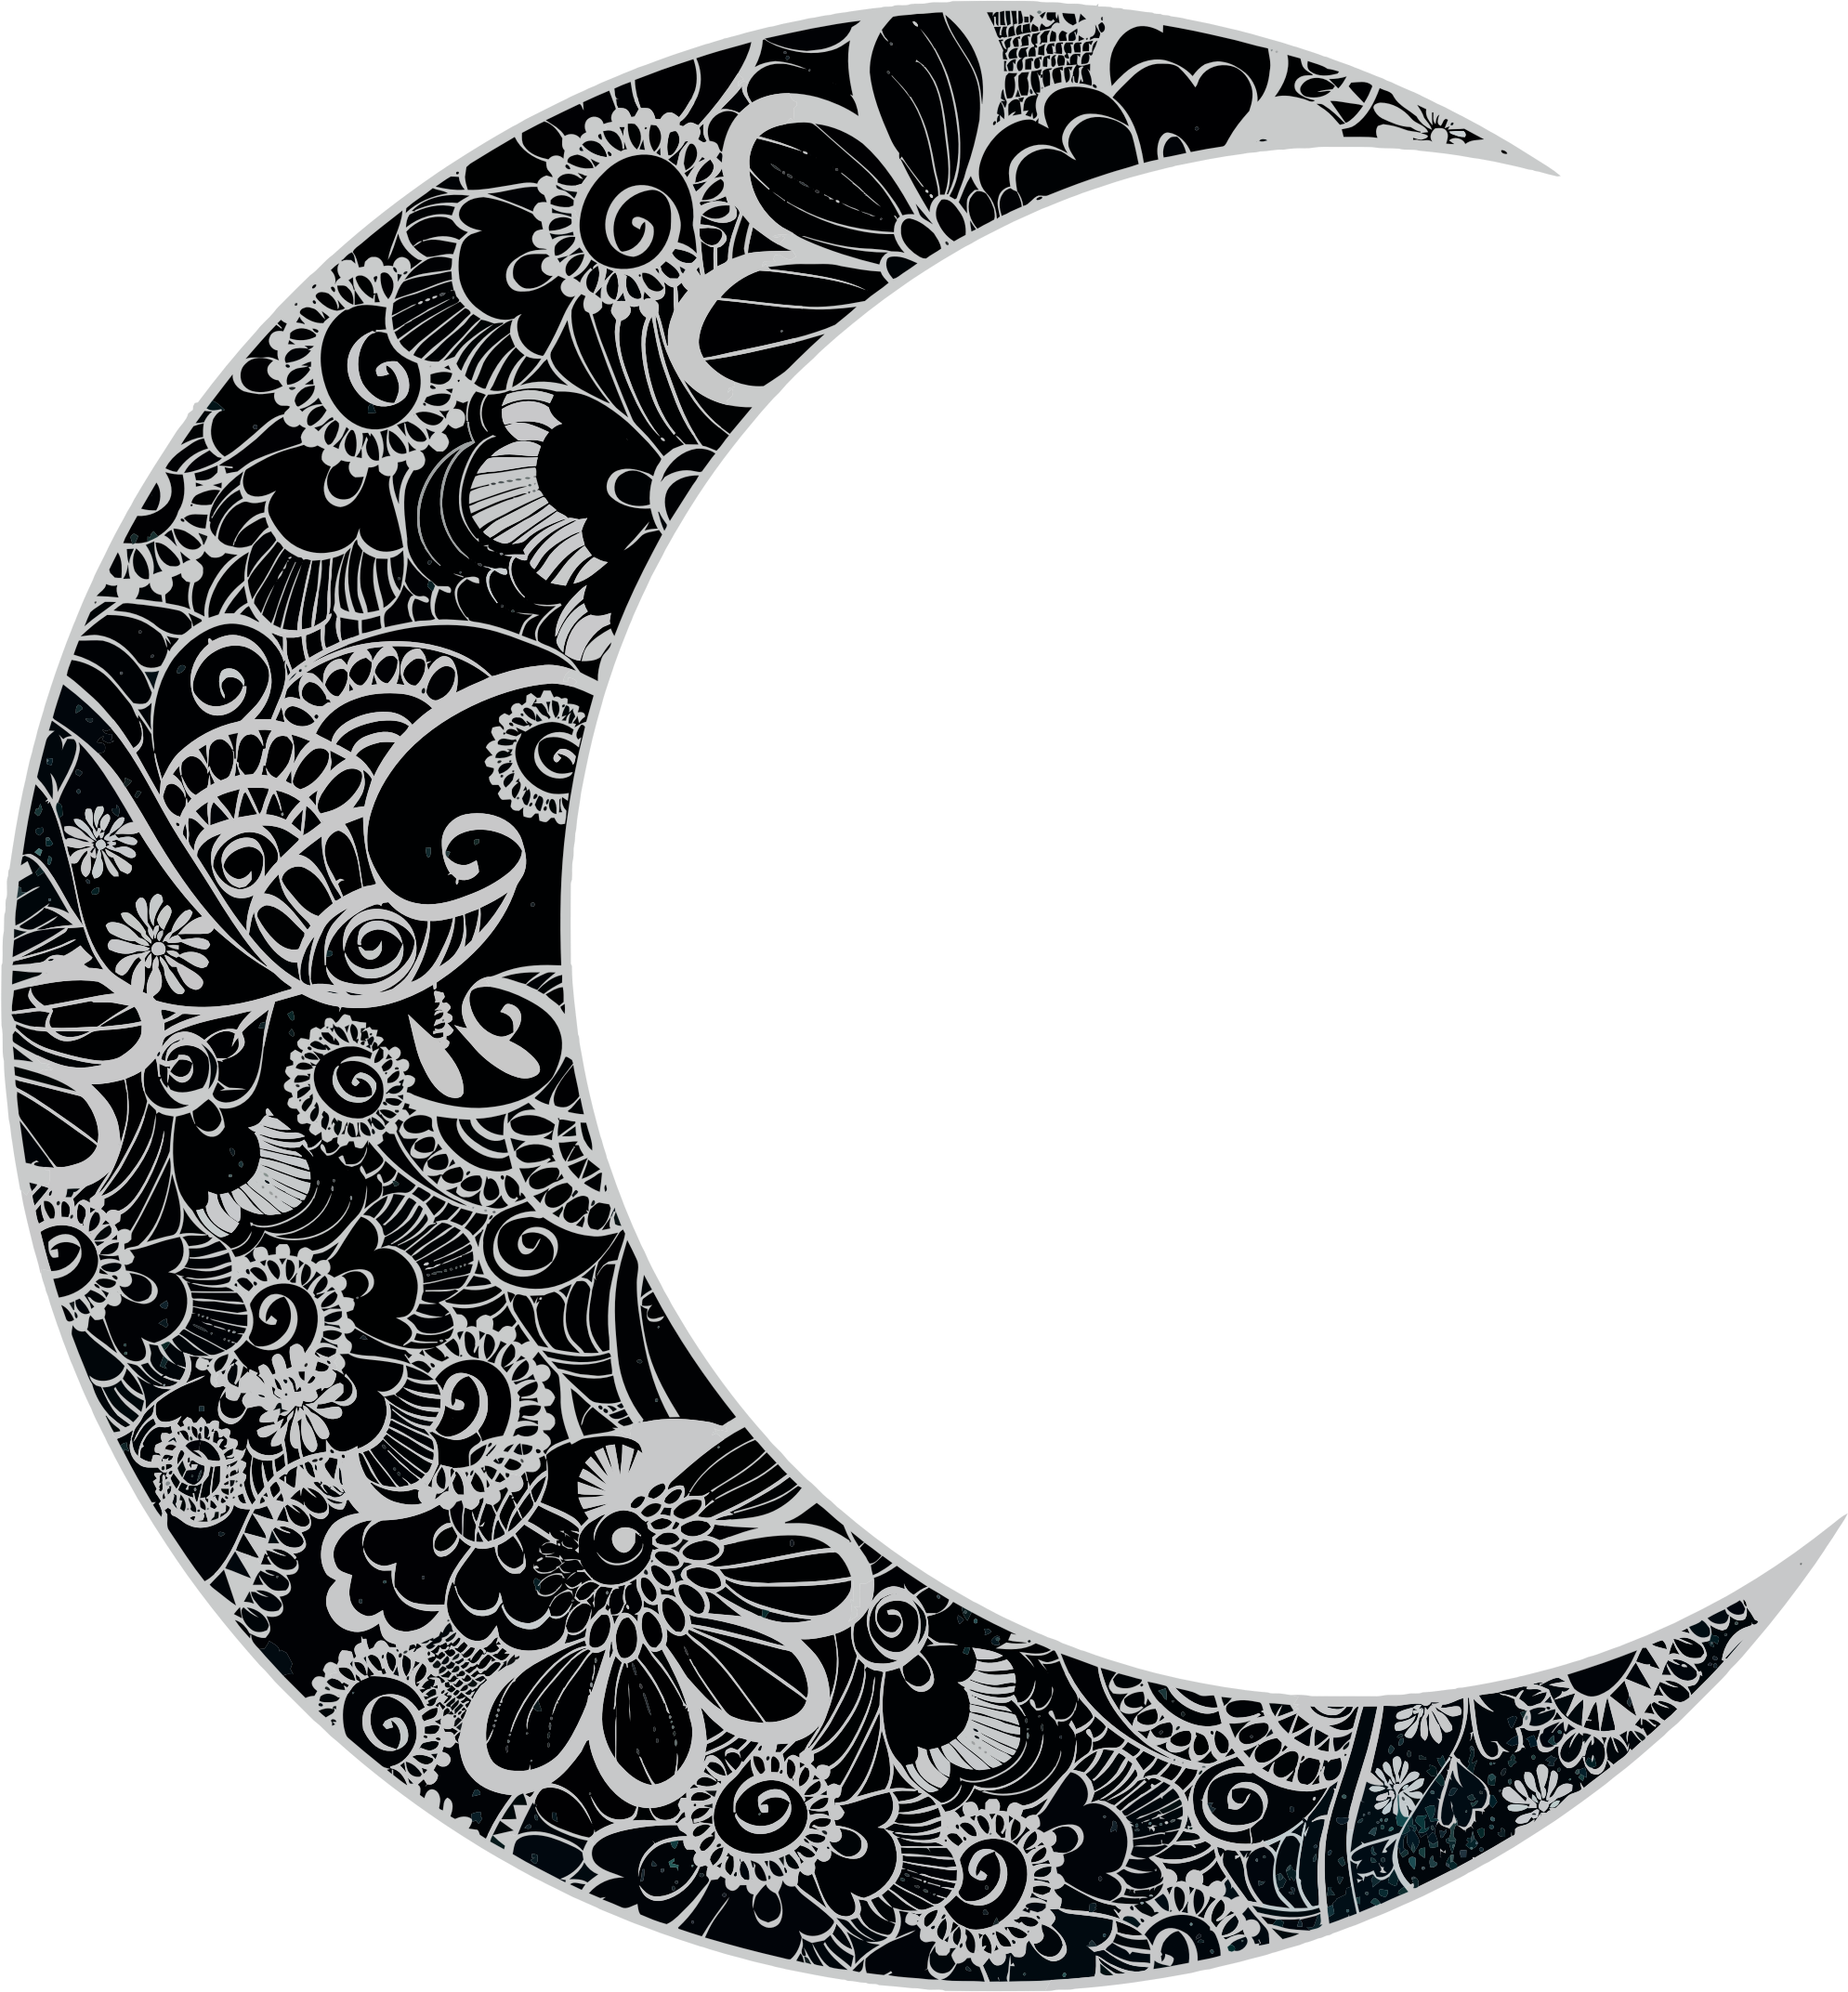 Black and white half moon designs clipart clipart free stock Crescent Moon Clipart Black And White | Free download best Crescent ... clipart free stock